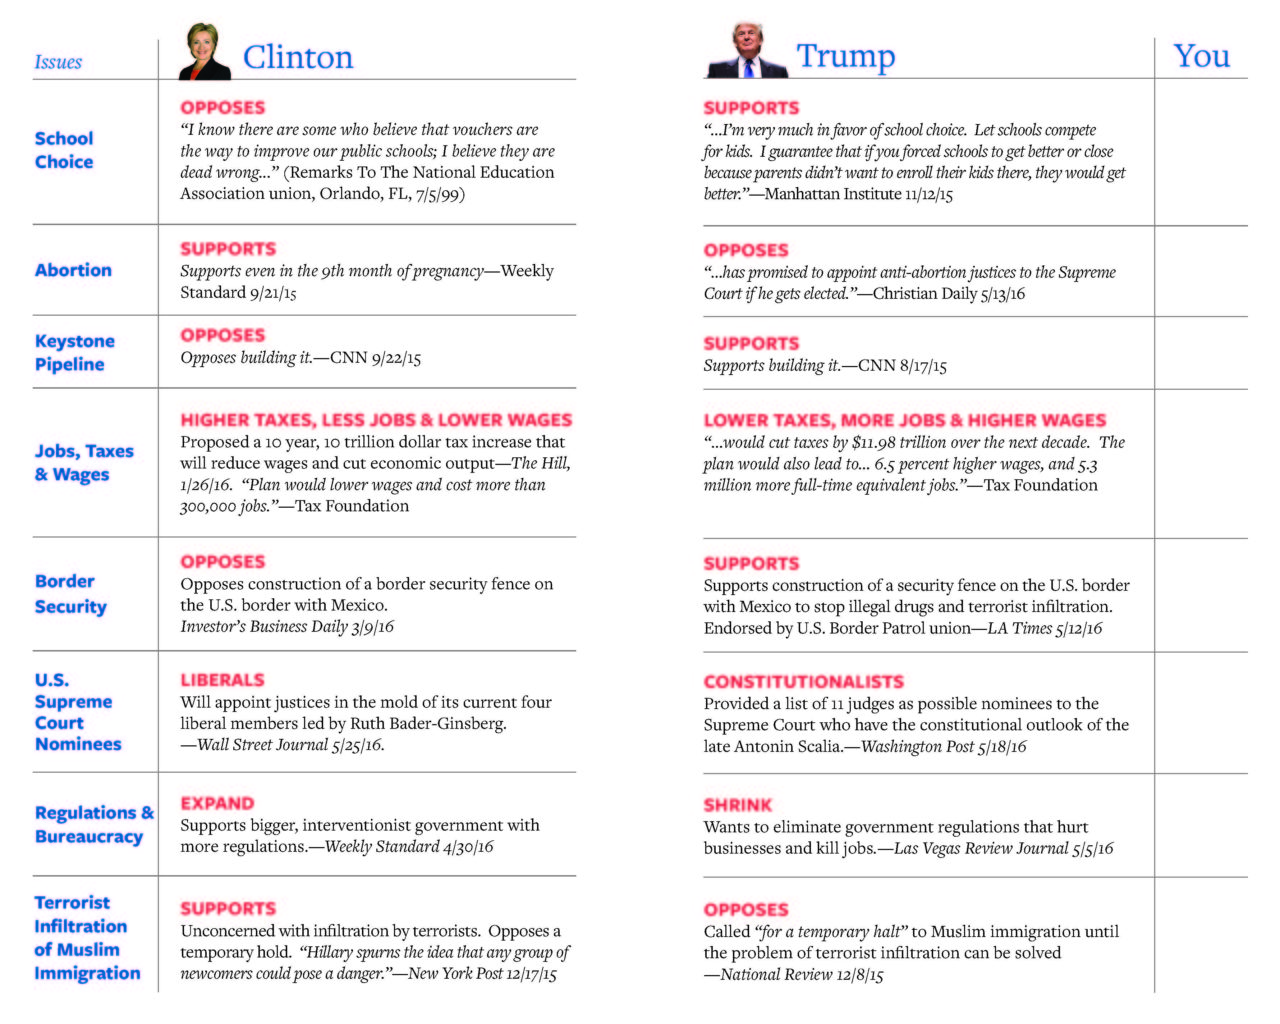 Carson_Trump_Booklet_Comparison Sheet Only 7-26-16